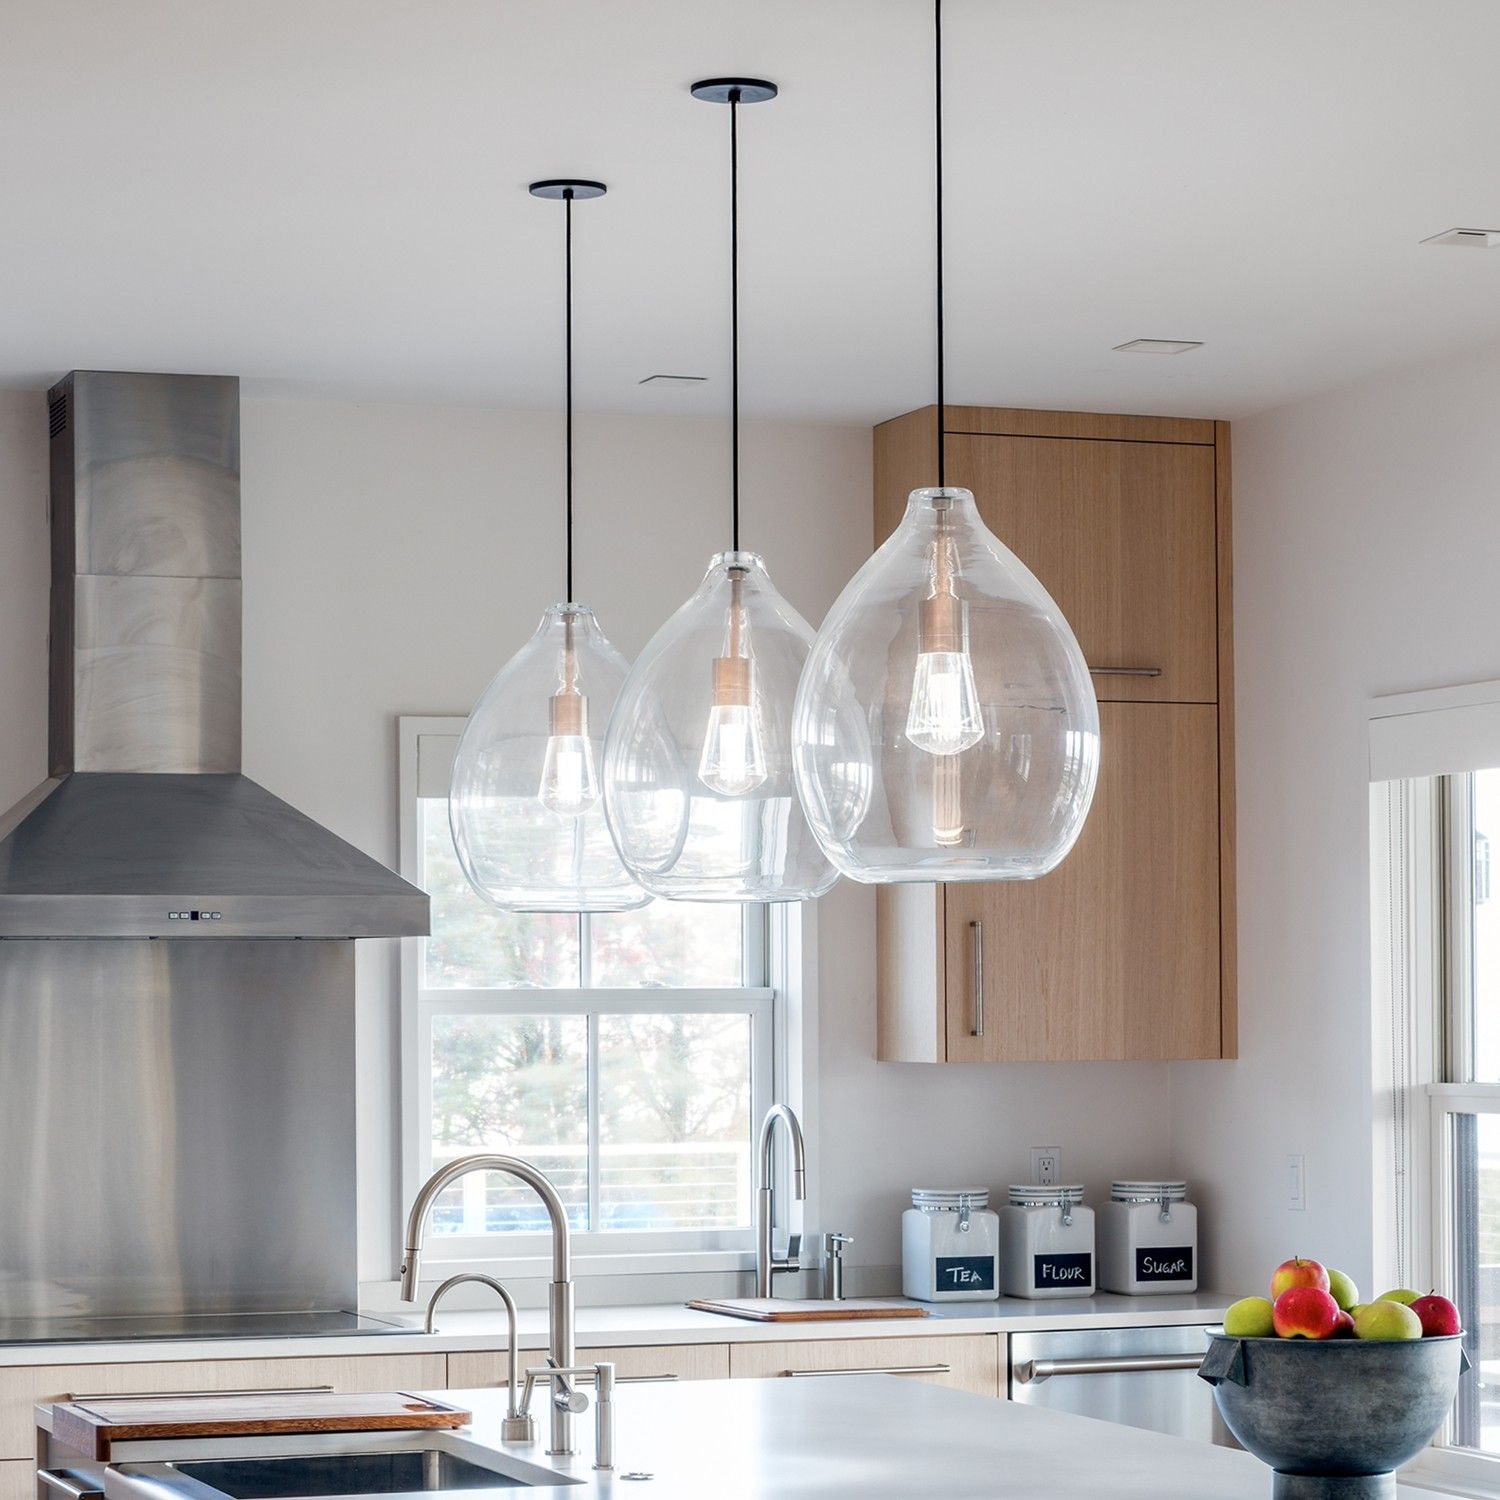 Summer Design Sale Save Up To 20 On Innovative Iconic Lighting